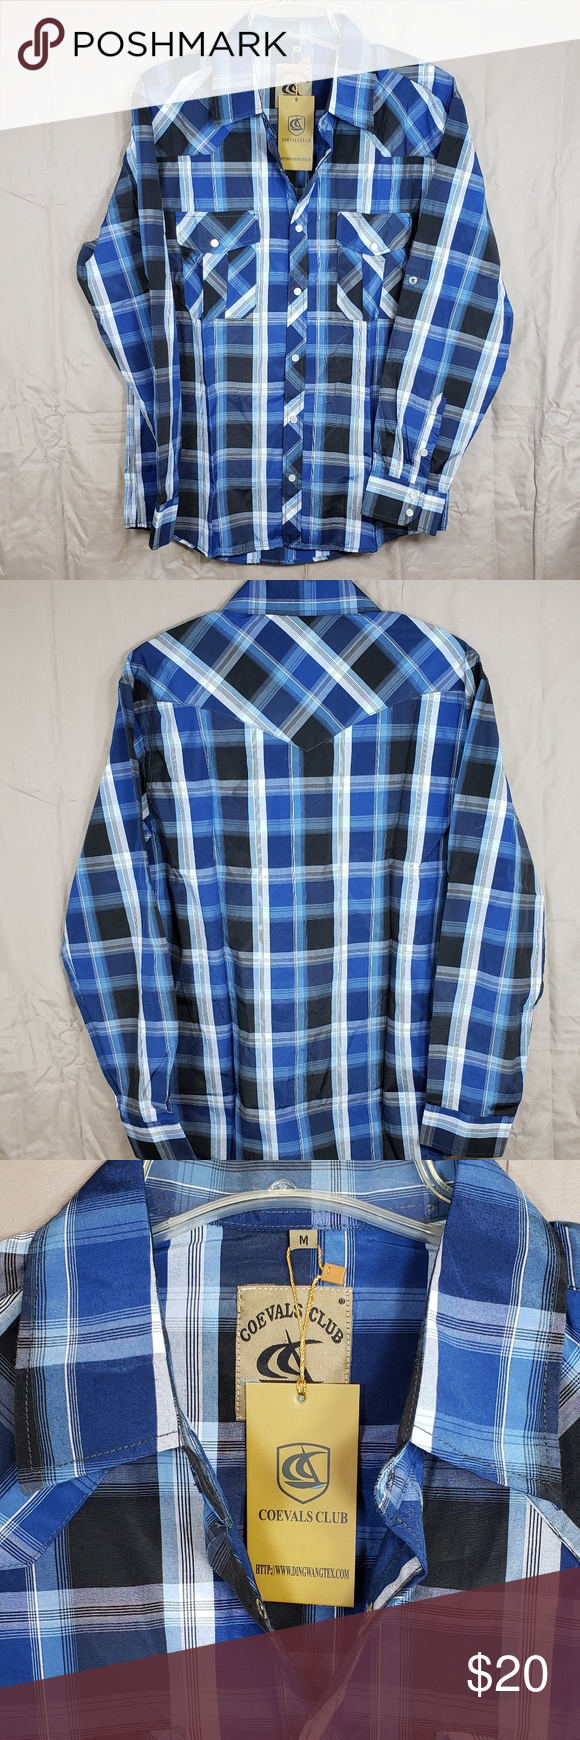 441dcd74419 Coevals Club Men's Long Sleeve Shirt Coevals Club Men's Long Sleeve Casual  Western Plaid Snap Buttons Shirt. Size is Medium. 40%Cotton/60%Polyester  Pearl ...